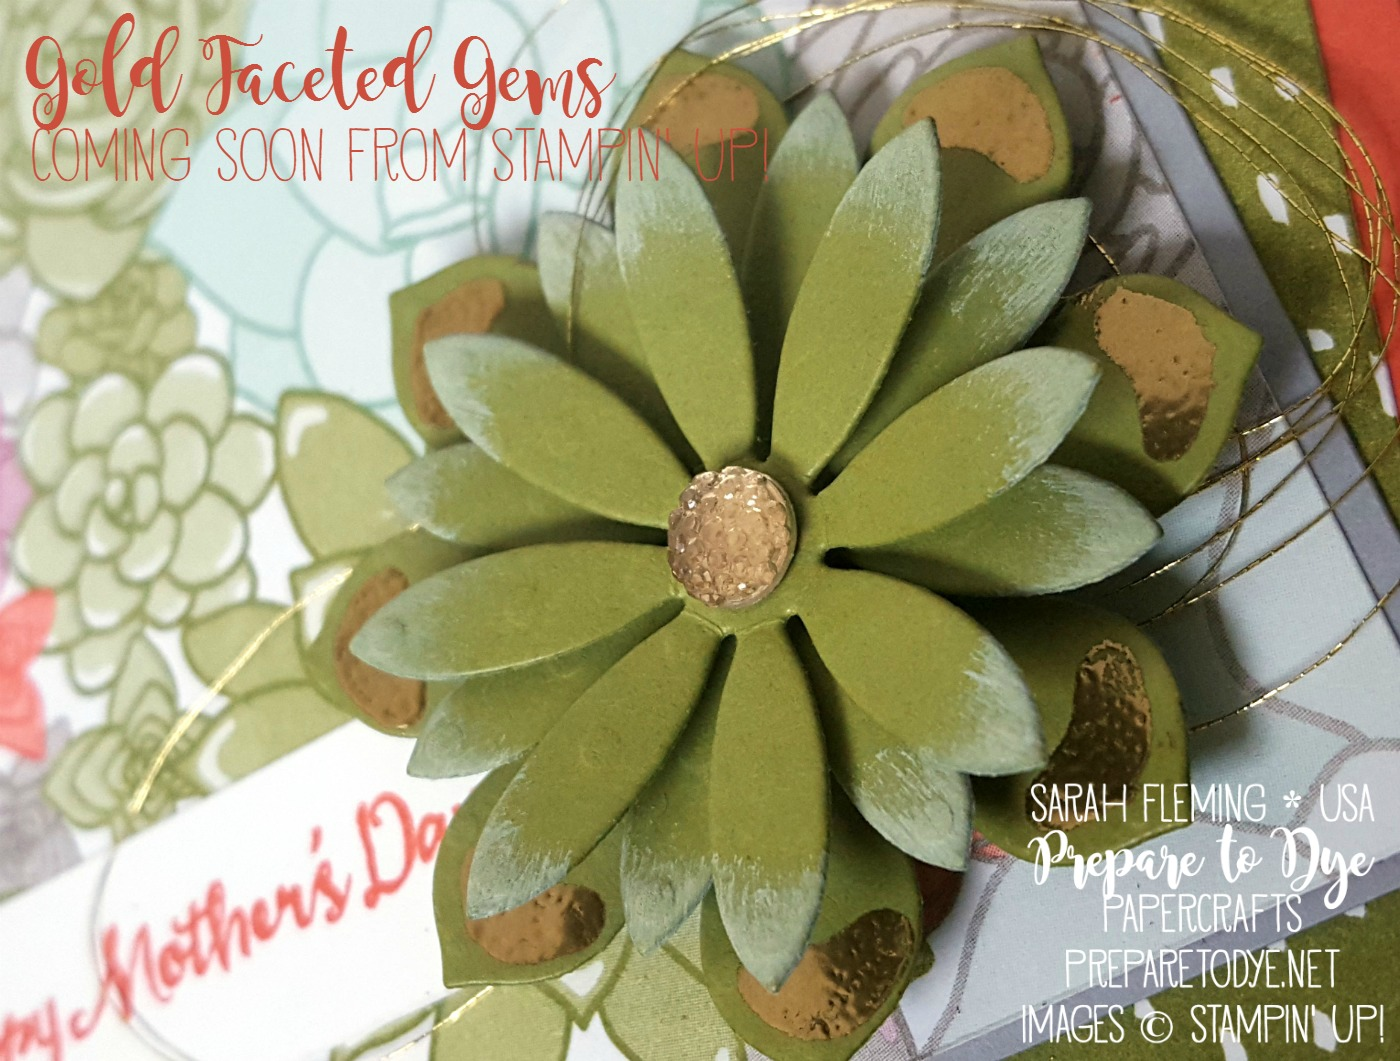 Stampin' Up!'s Oh So Succulent suite is RETIRING! This handmade Mother's Day card also features the COMING SOON Gold Faceted Gems - Sarah Fleming - Prepare to Dye Papercrafts - SIP Challenge